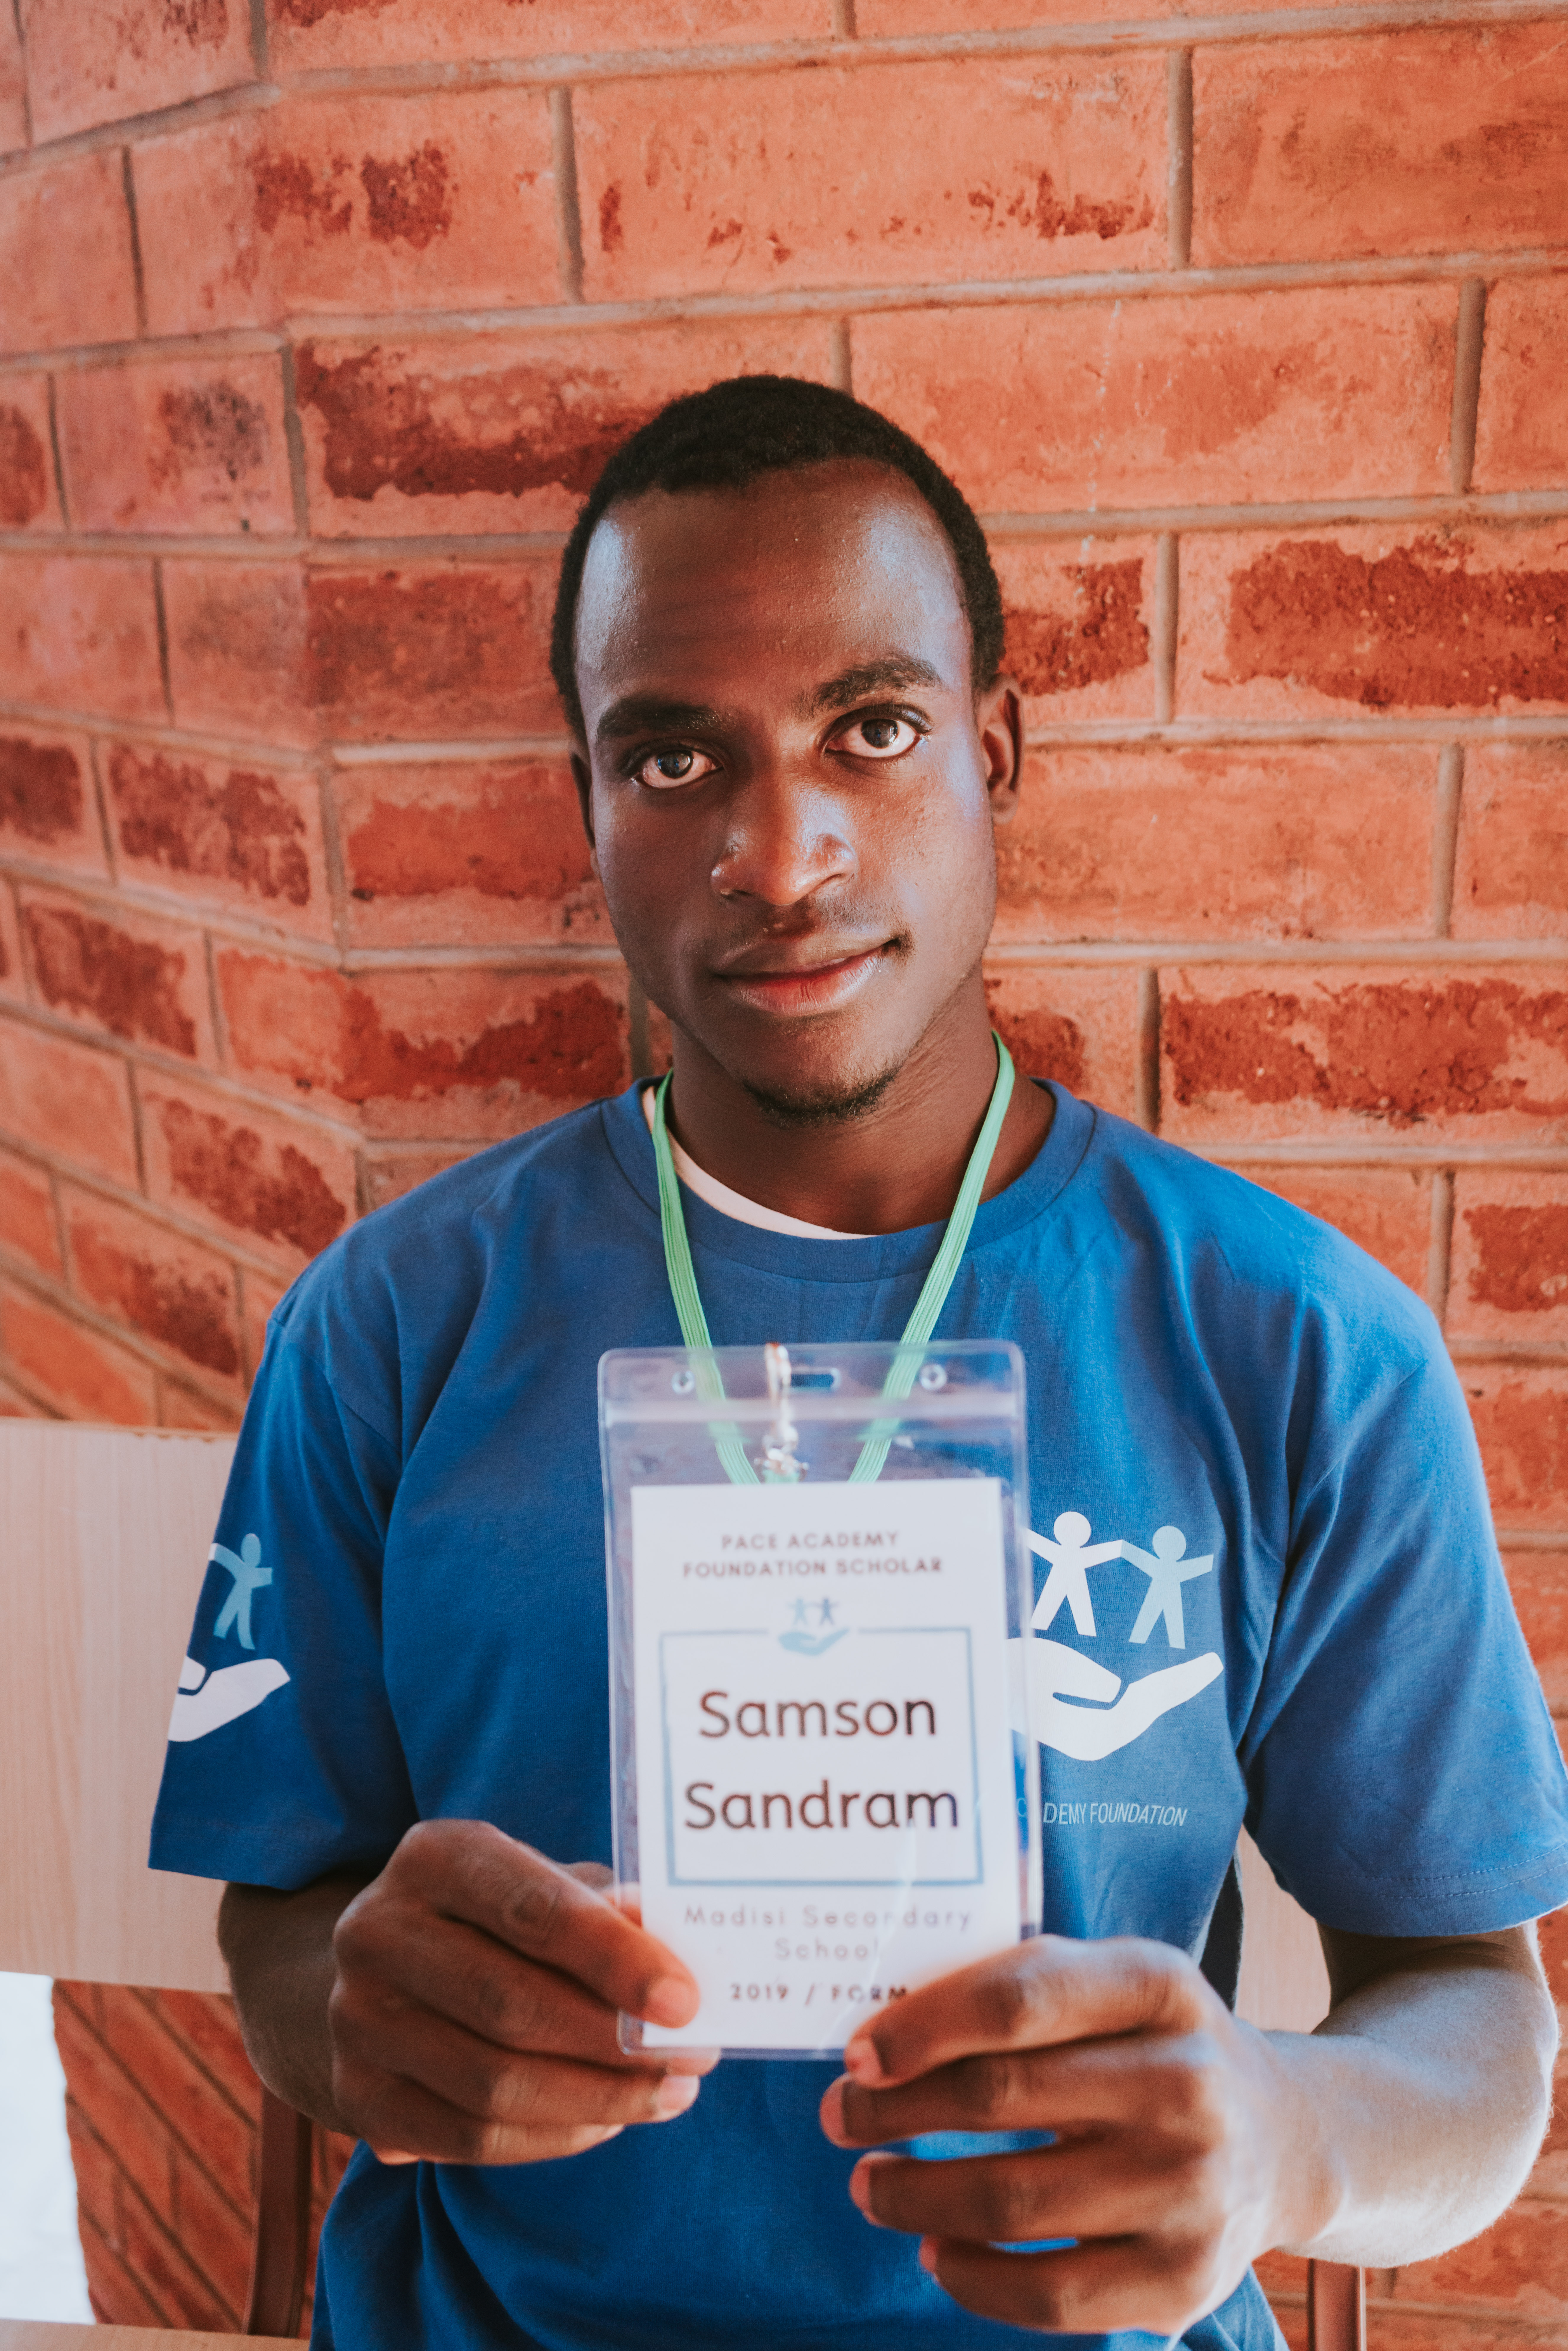 Samson Sandram (Madisi Secondary School)